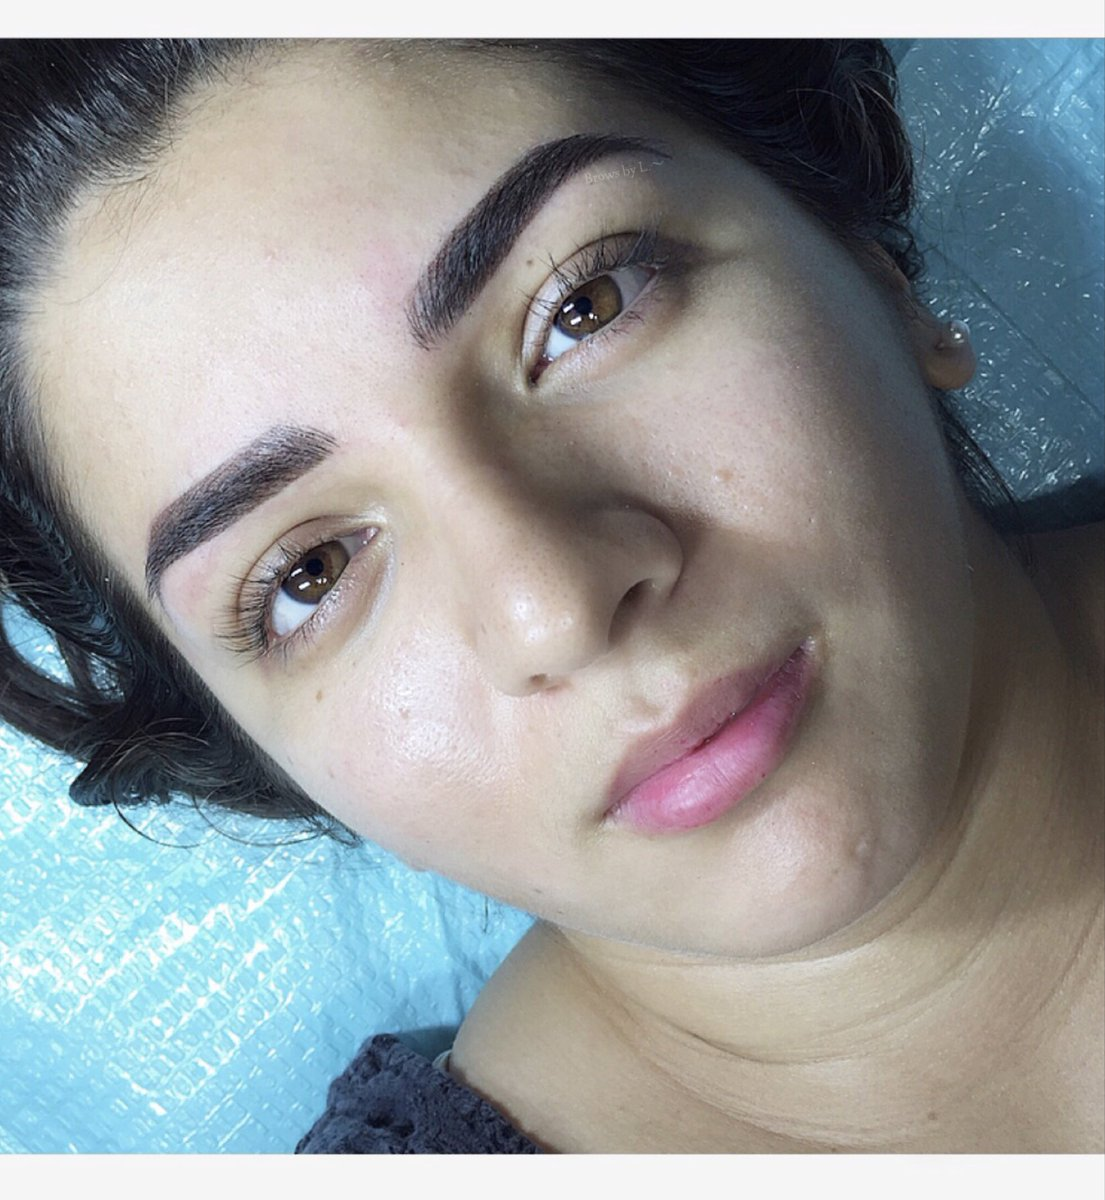 Before and after combo brows done with machine shading and microblading. #browsbyL #brows #powderbrows #beforeandafter #tattoo #tattooart #inked #beauty #beautyideas #makeuplooks #makeup #bakersfieldca<br>http://pic.twitter.com/nUTM4i2zaL